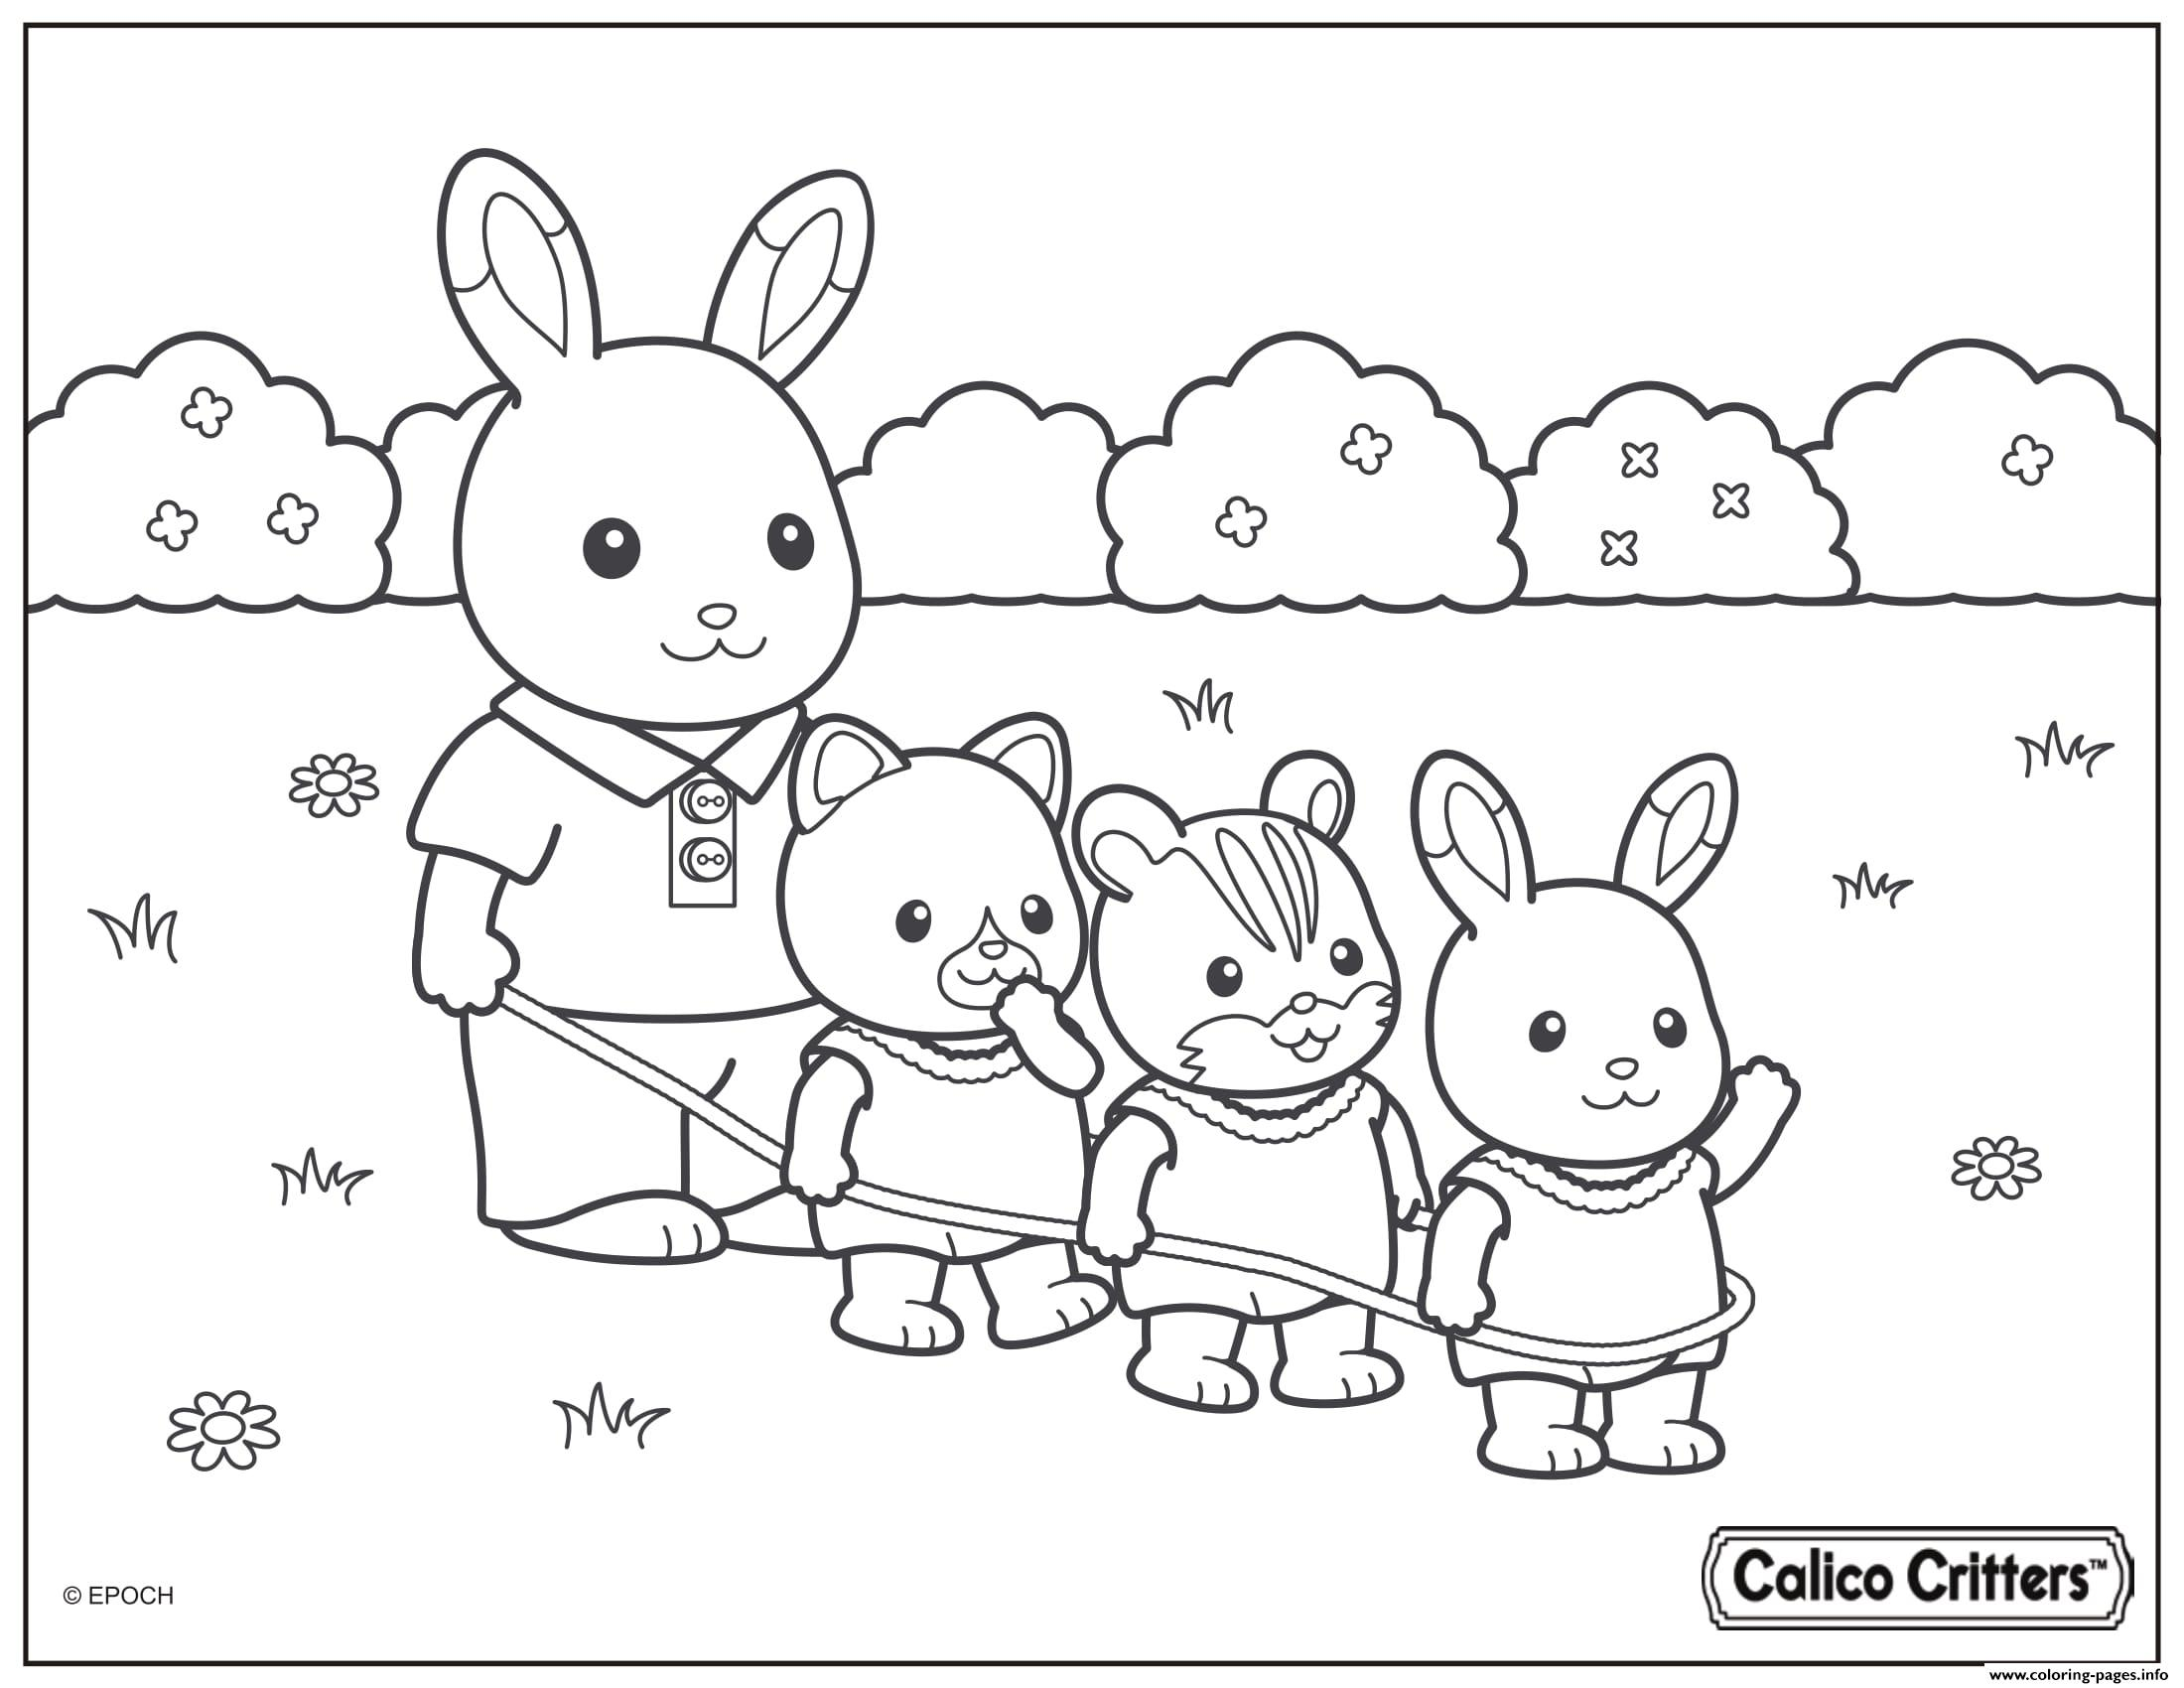 Calico Critters Playing With Kids In The Yard coloring pages